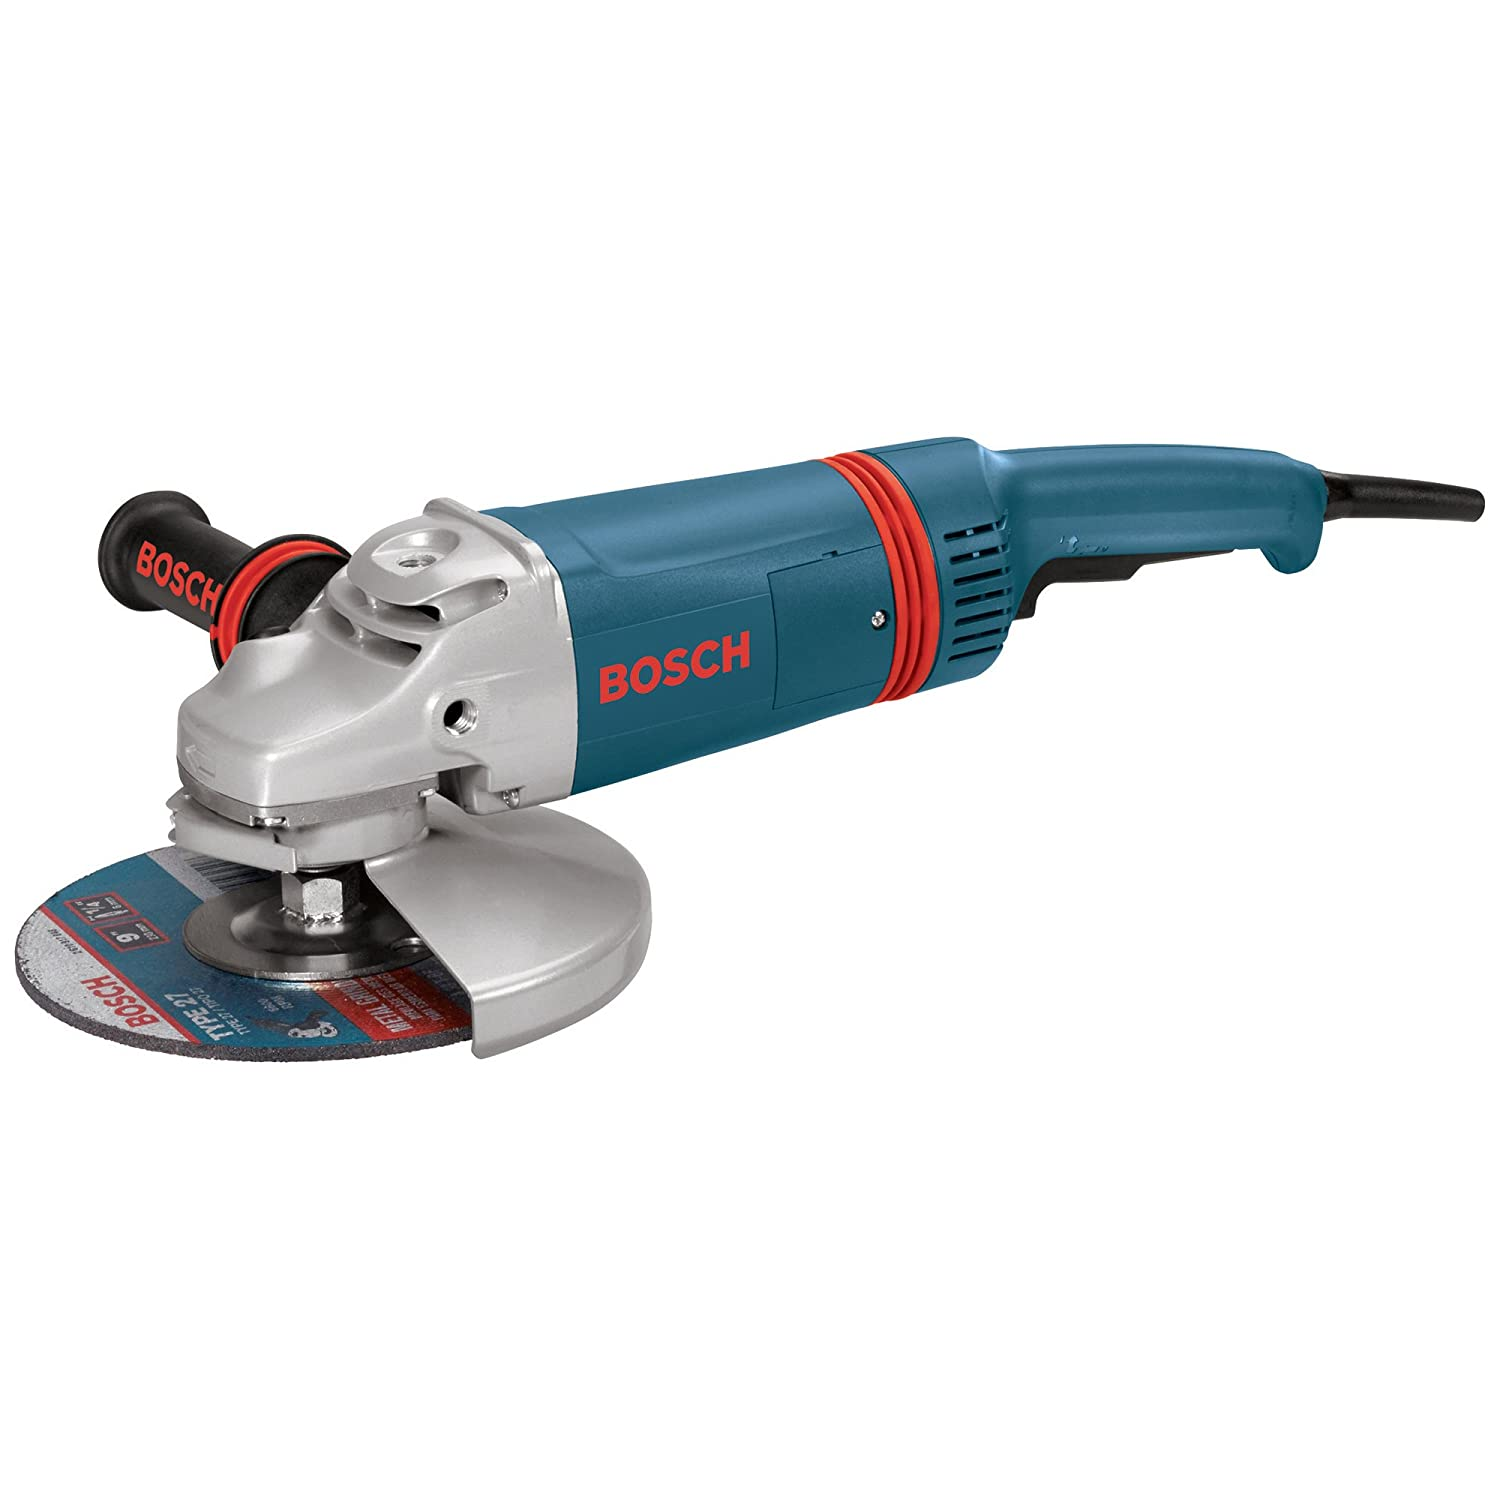 Bosch 1893-6 9 Large Angle Grinder with Rat Tail Handle